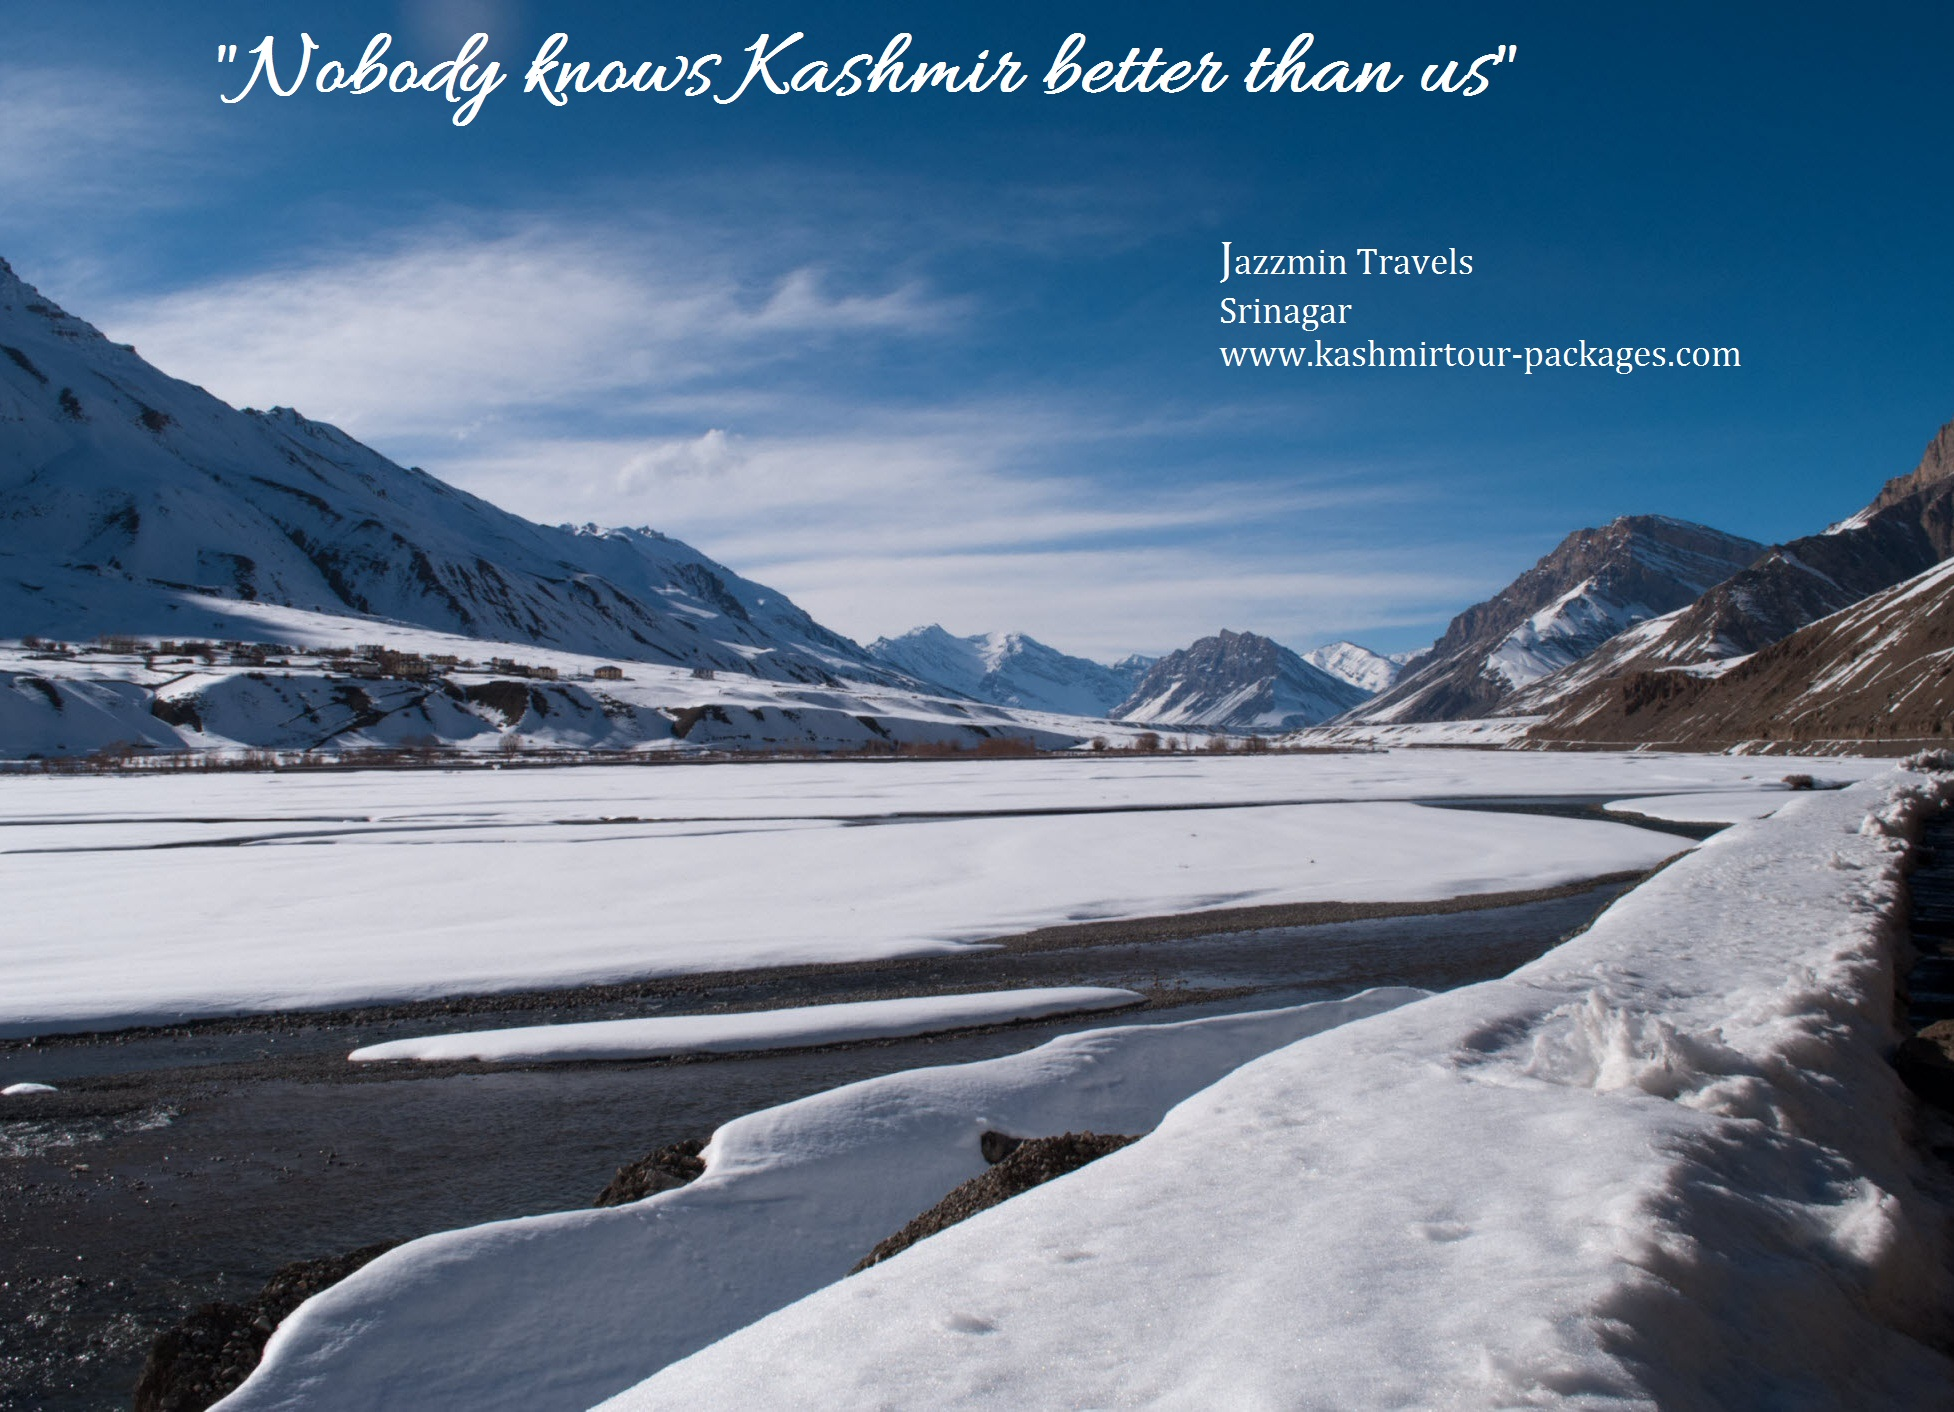 kashmir tour packages from jazzmin travels 72